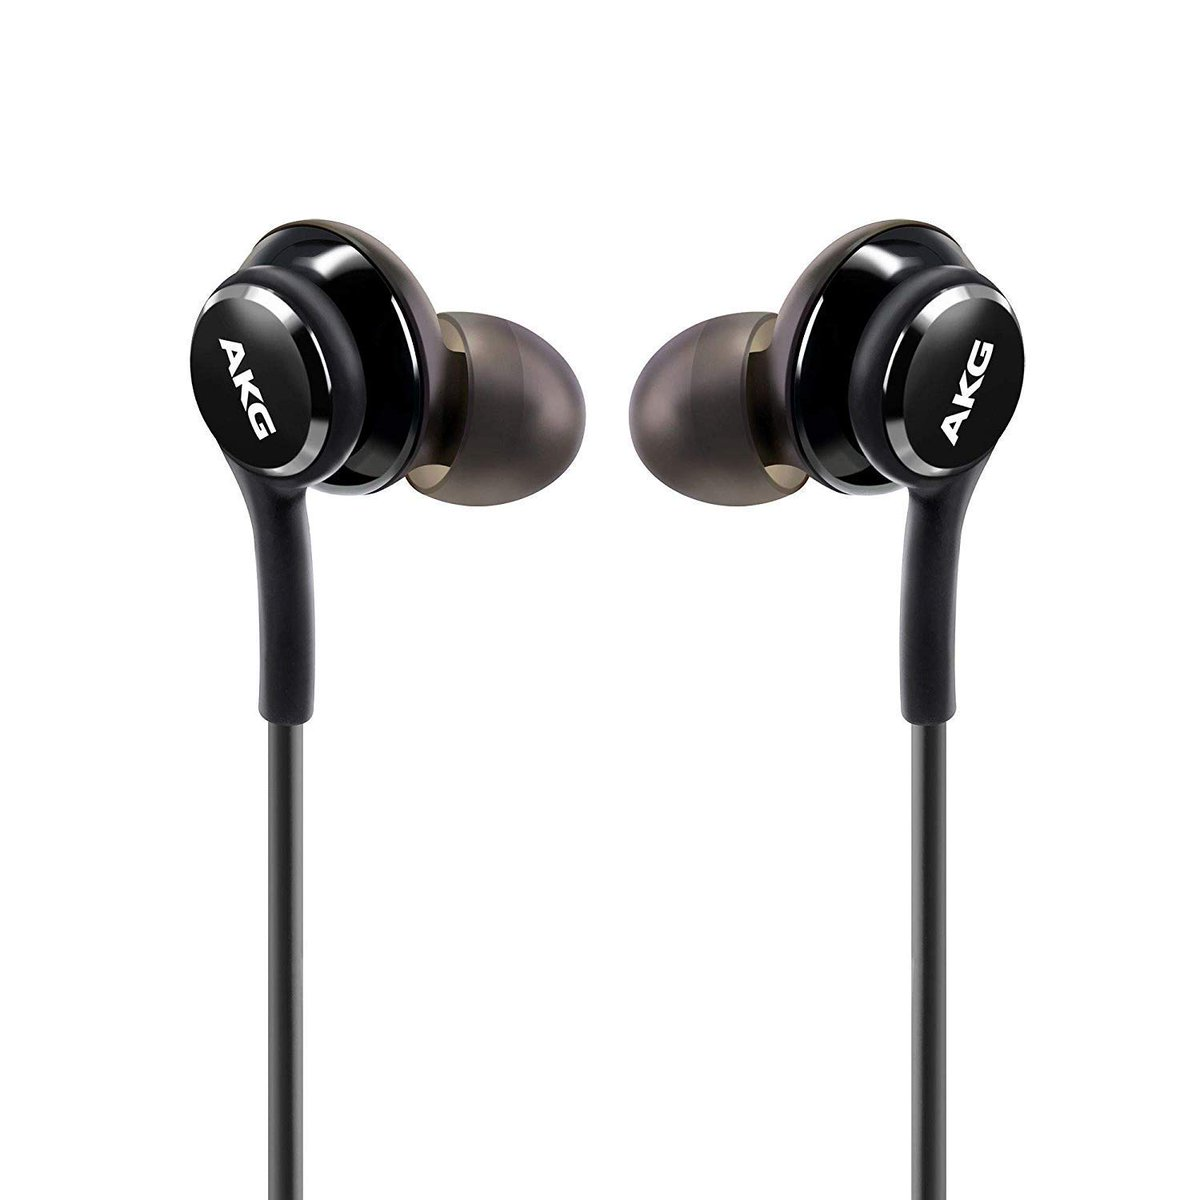 Fsquare AKG Wired Earphones with Deep Bass Noise Cancellation, Best Drivers, Sweat Resistance and in-line Mic 👇👇👇👇👇👇👇 https://t.co/zxj8iCaNd7 Best deal amazon with extra off  #earphones #Samsung #Amazon #music #best #deal #Offers https://t.co/uwAQ5oOG1D